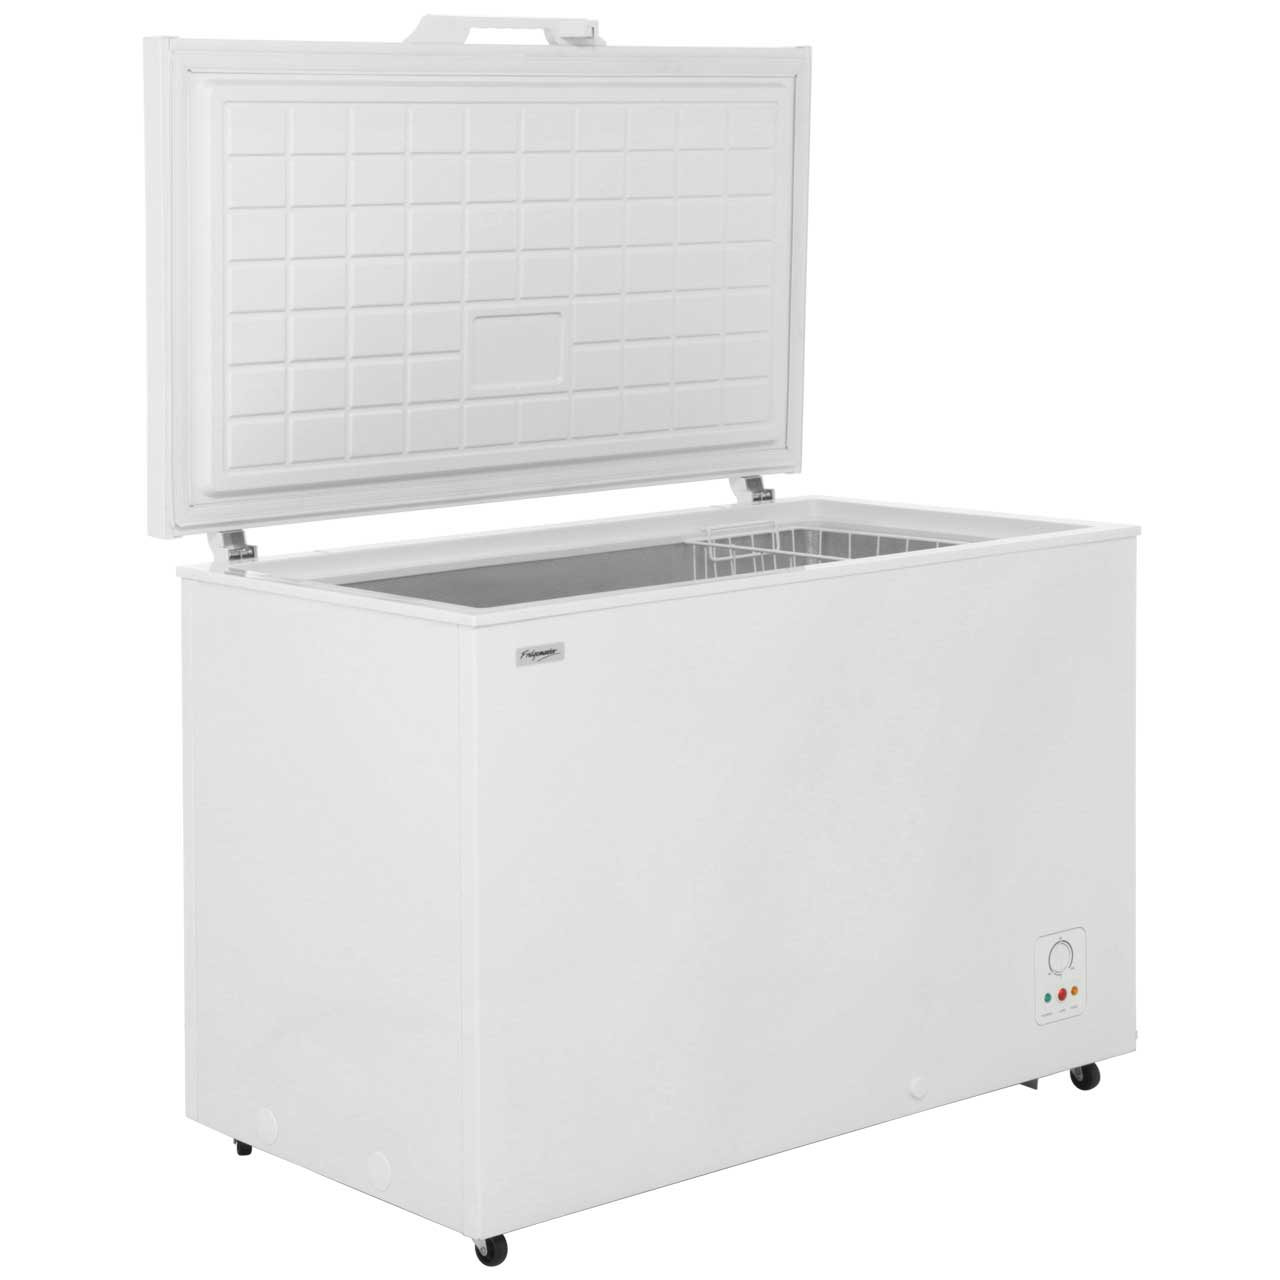 Fridgemaster Chest Freezer Mcf306 Make Your Own Beautiful  HD Wallpapers, Images Over 1000+ [ralydesign.ml]